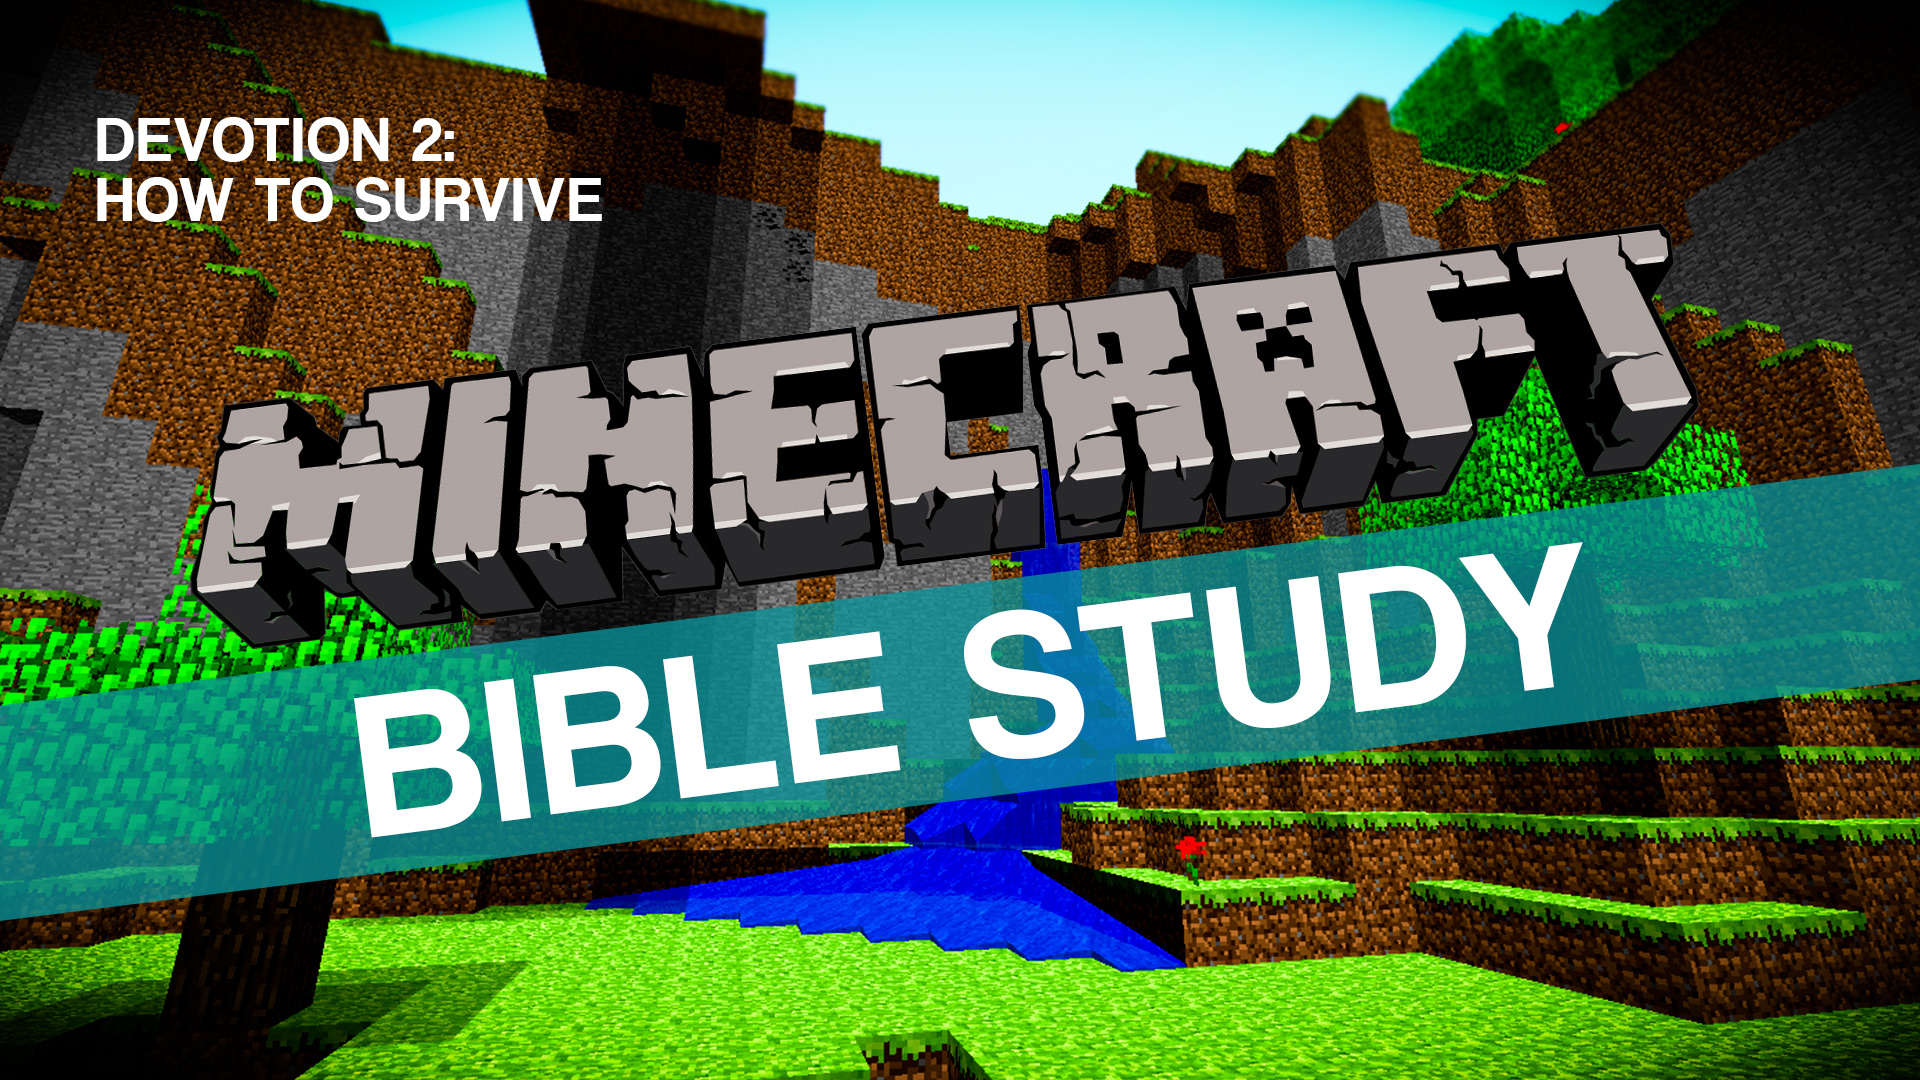 Minecraft Bible Study Devotion 2: What you need to survive